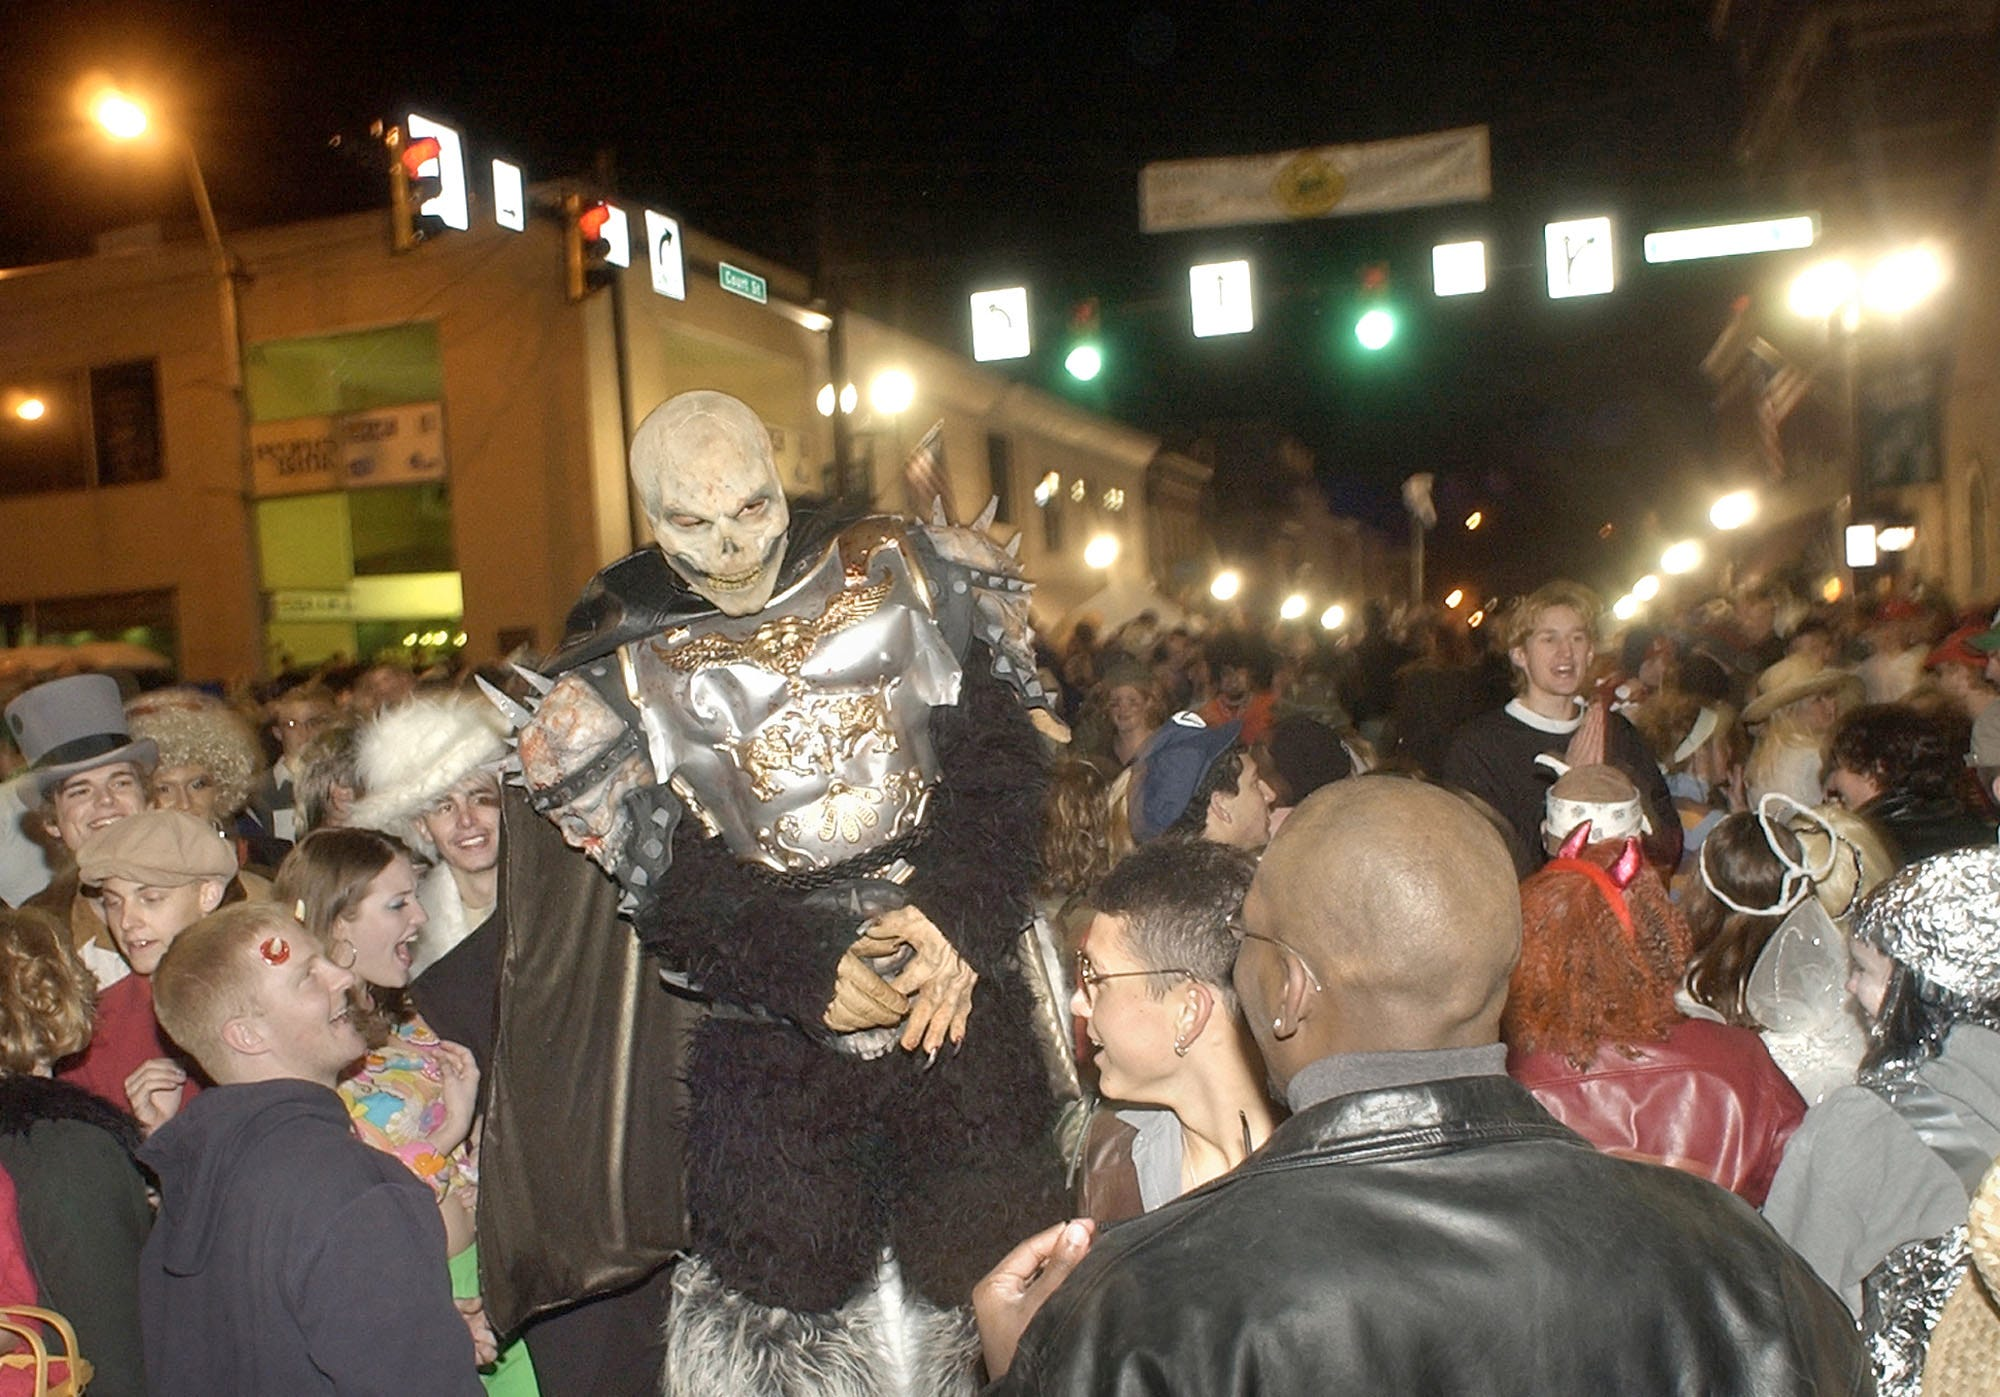 Halloween Parade Athens 2020 Athens cancels Halloween festivities because of COVID 19 pandemic